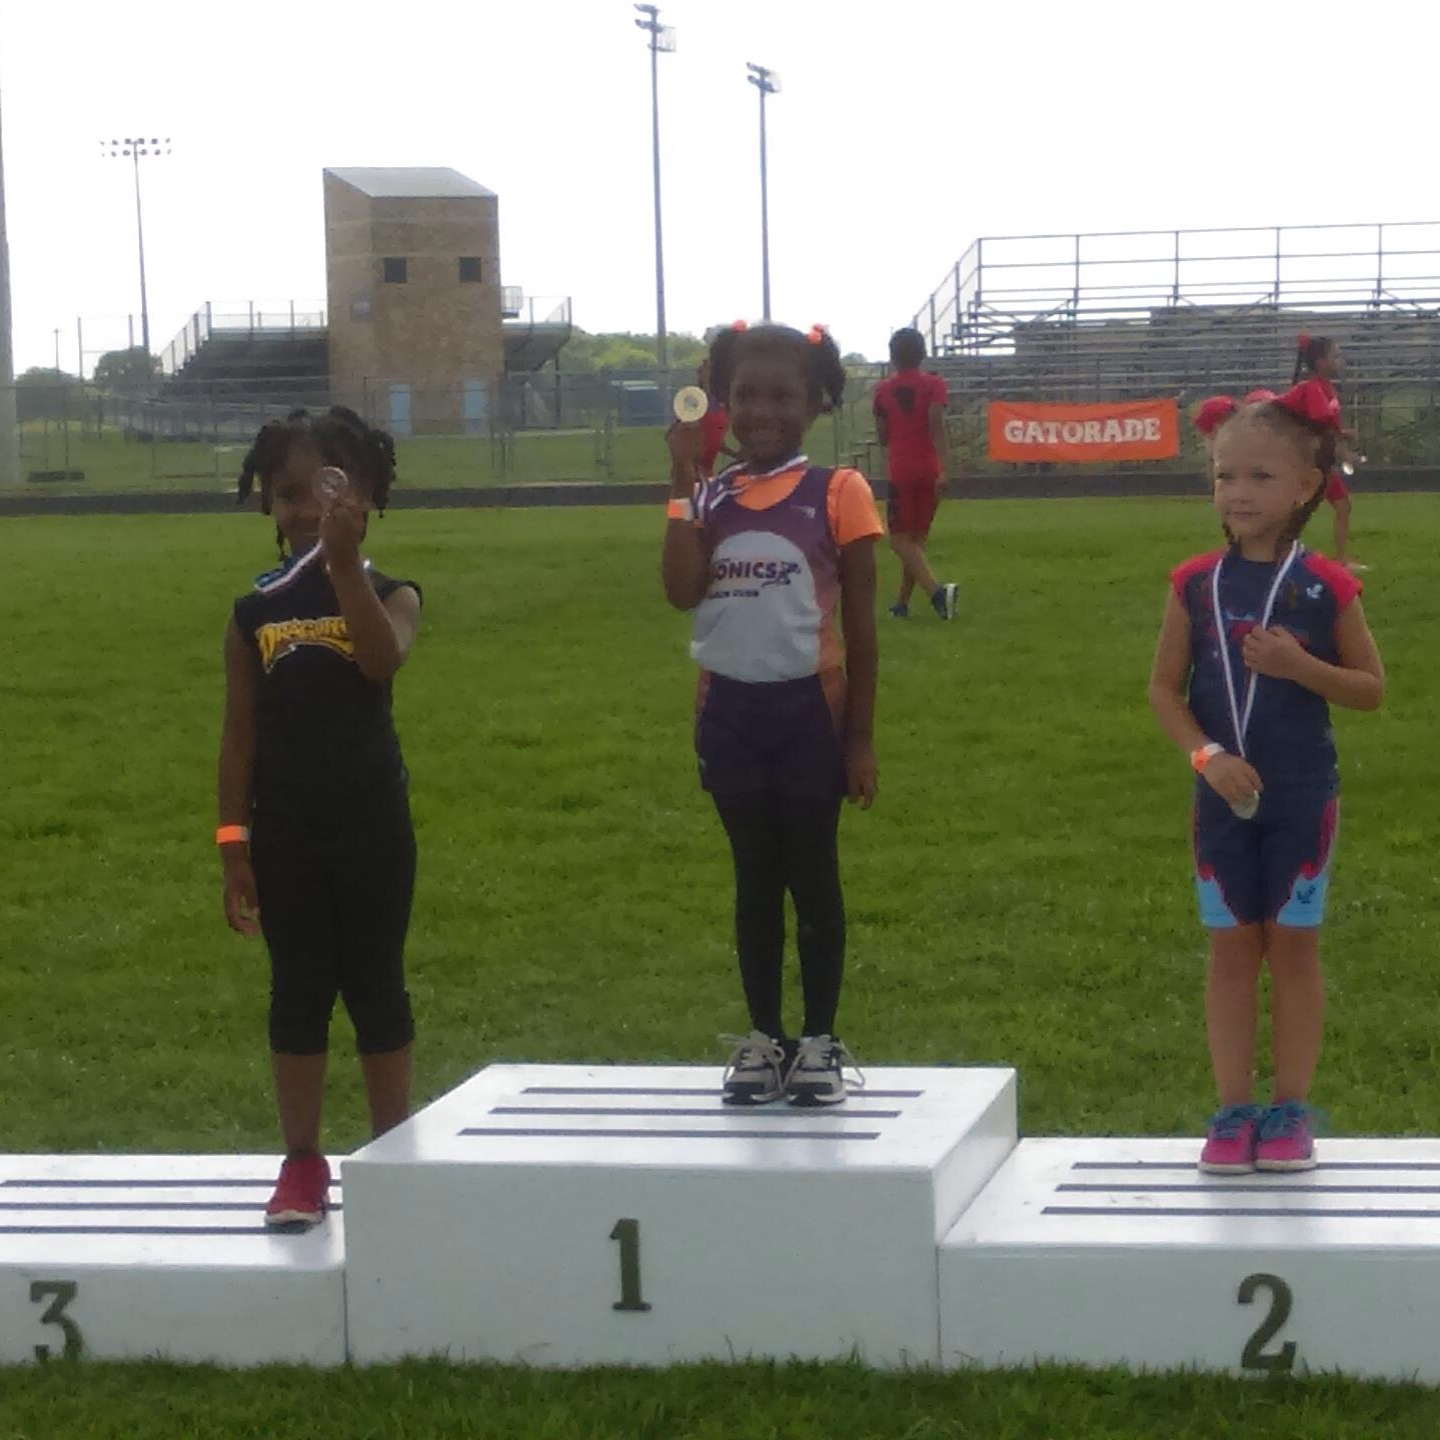 Naveah wins gold